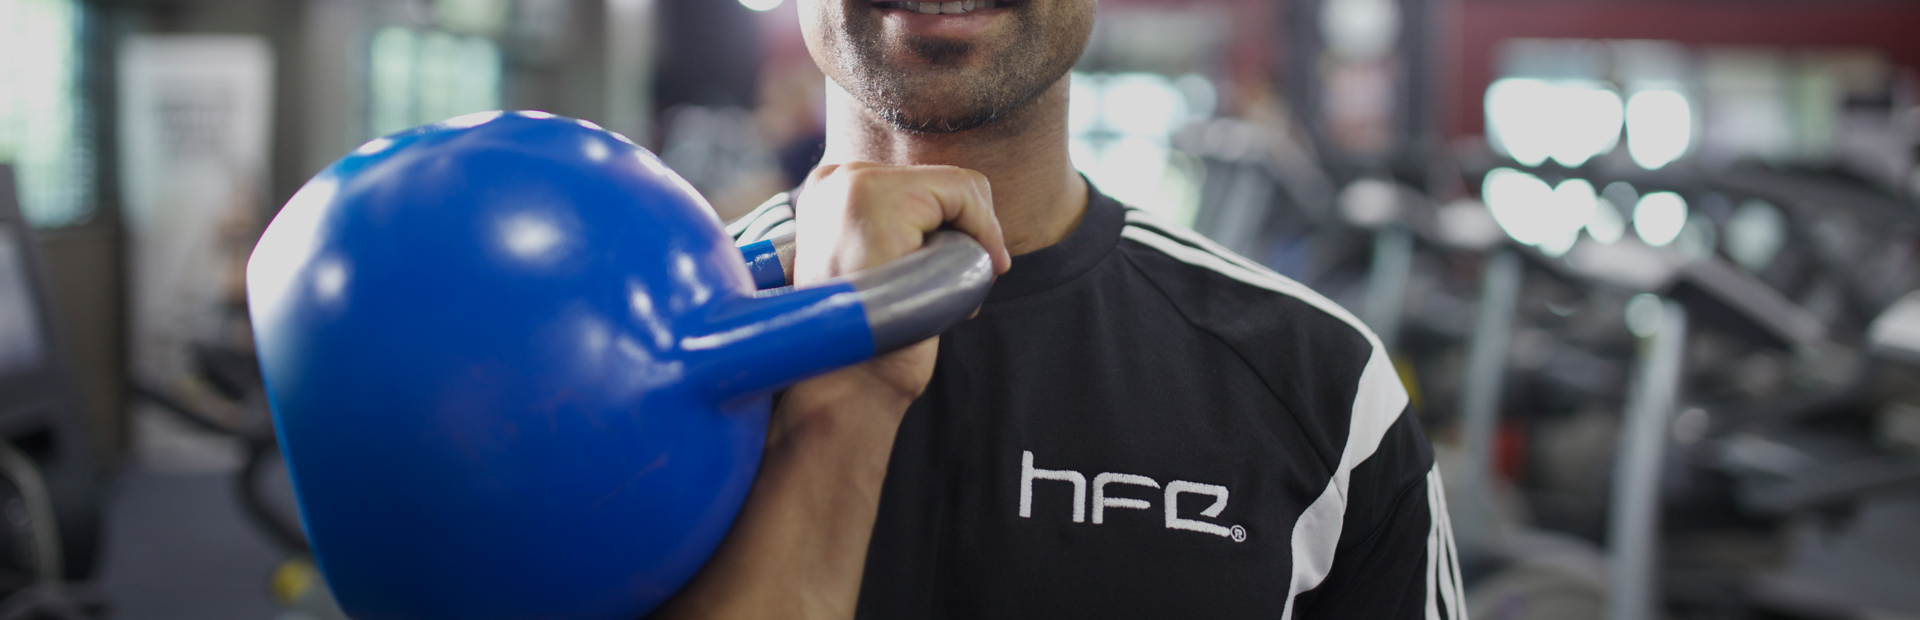 A qualified personal trainer holding a blue kettlebell